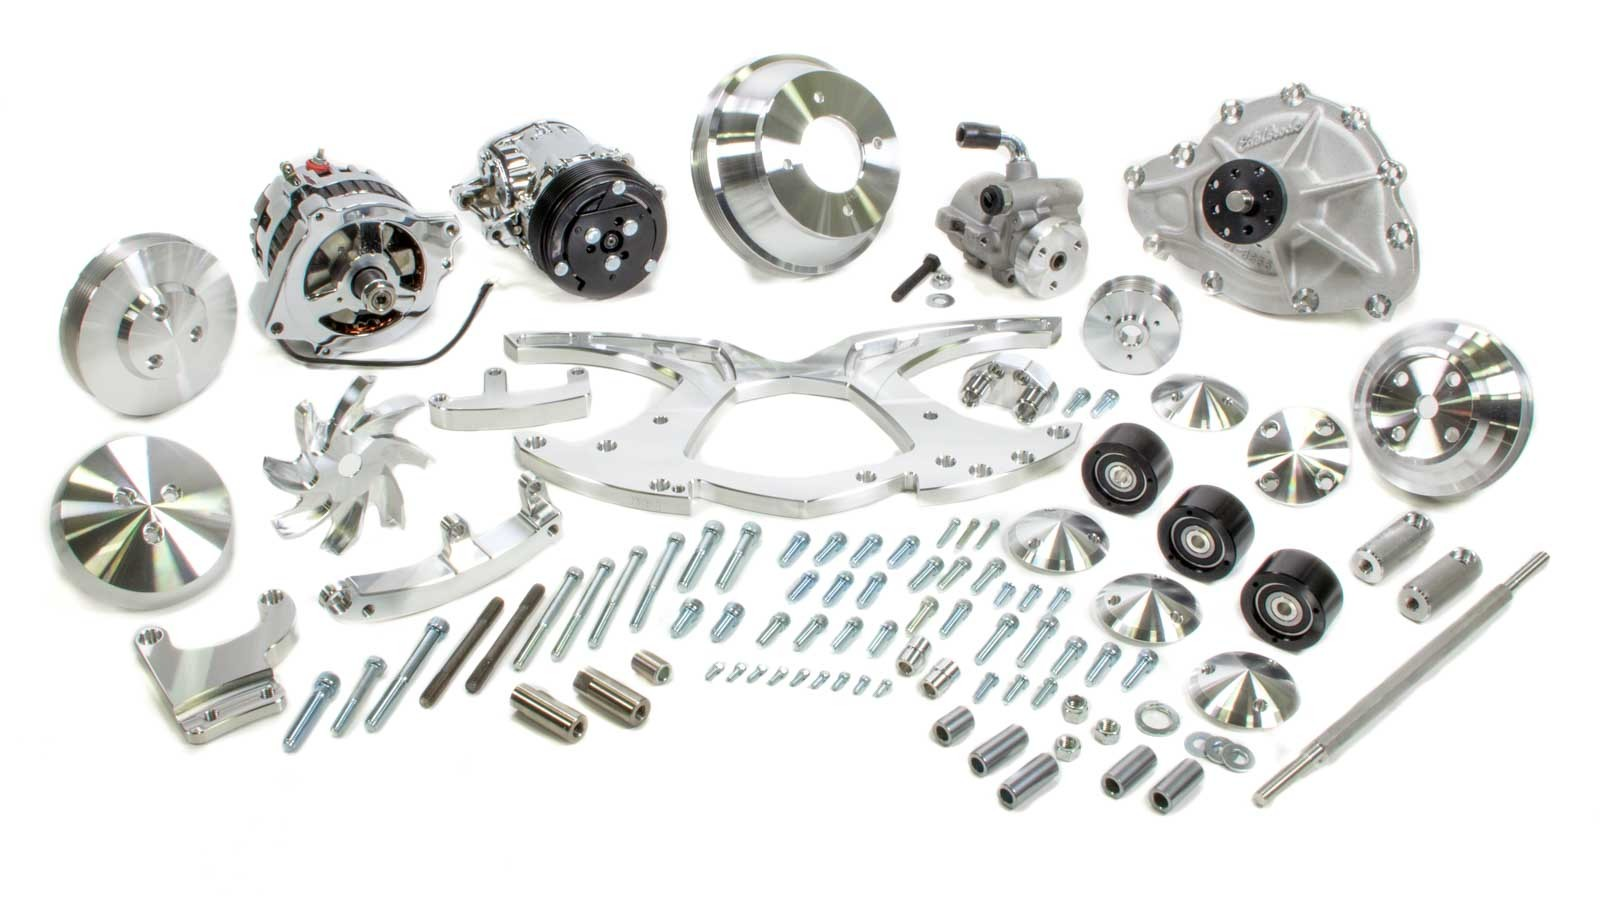 March Performance 13135 Pulley Kit, Style Track, 6 Rib Serpentine, Aluminum, Clear Powder Coat, Pontiac V8, Kit